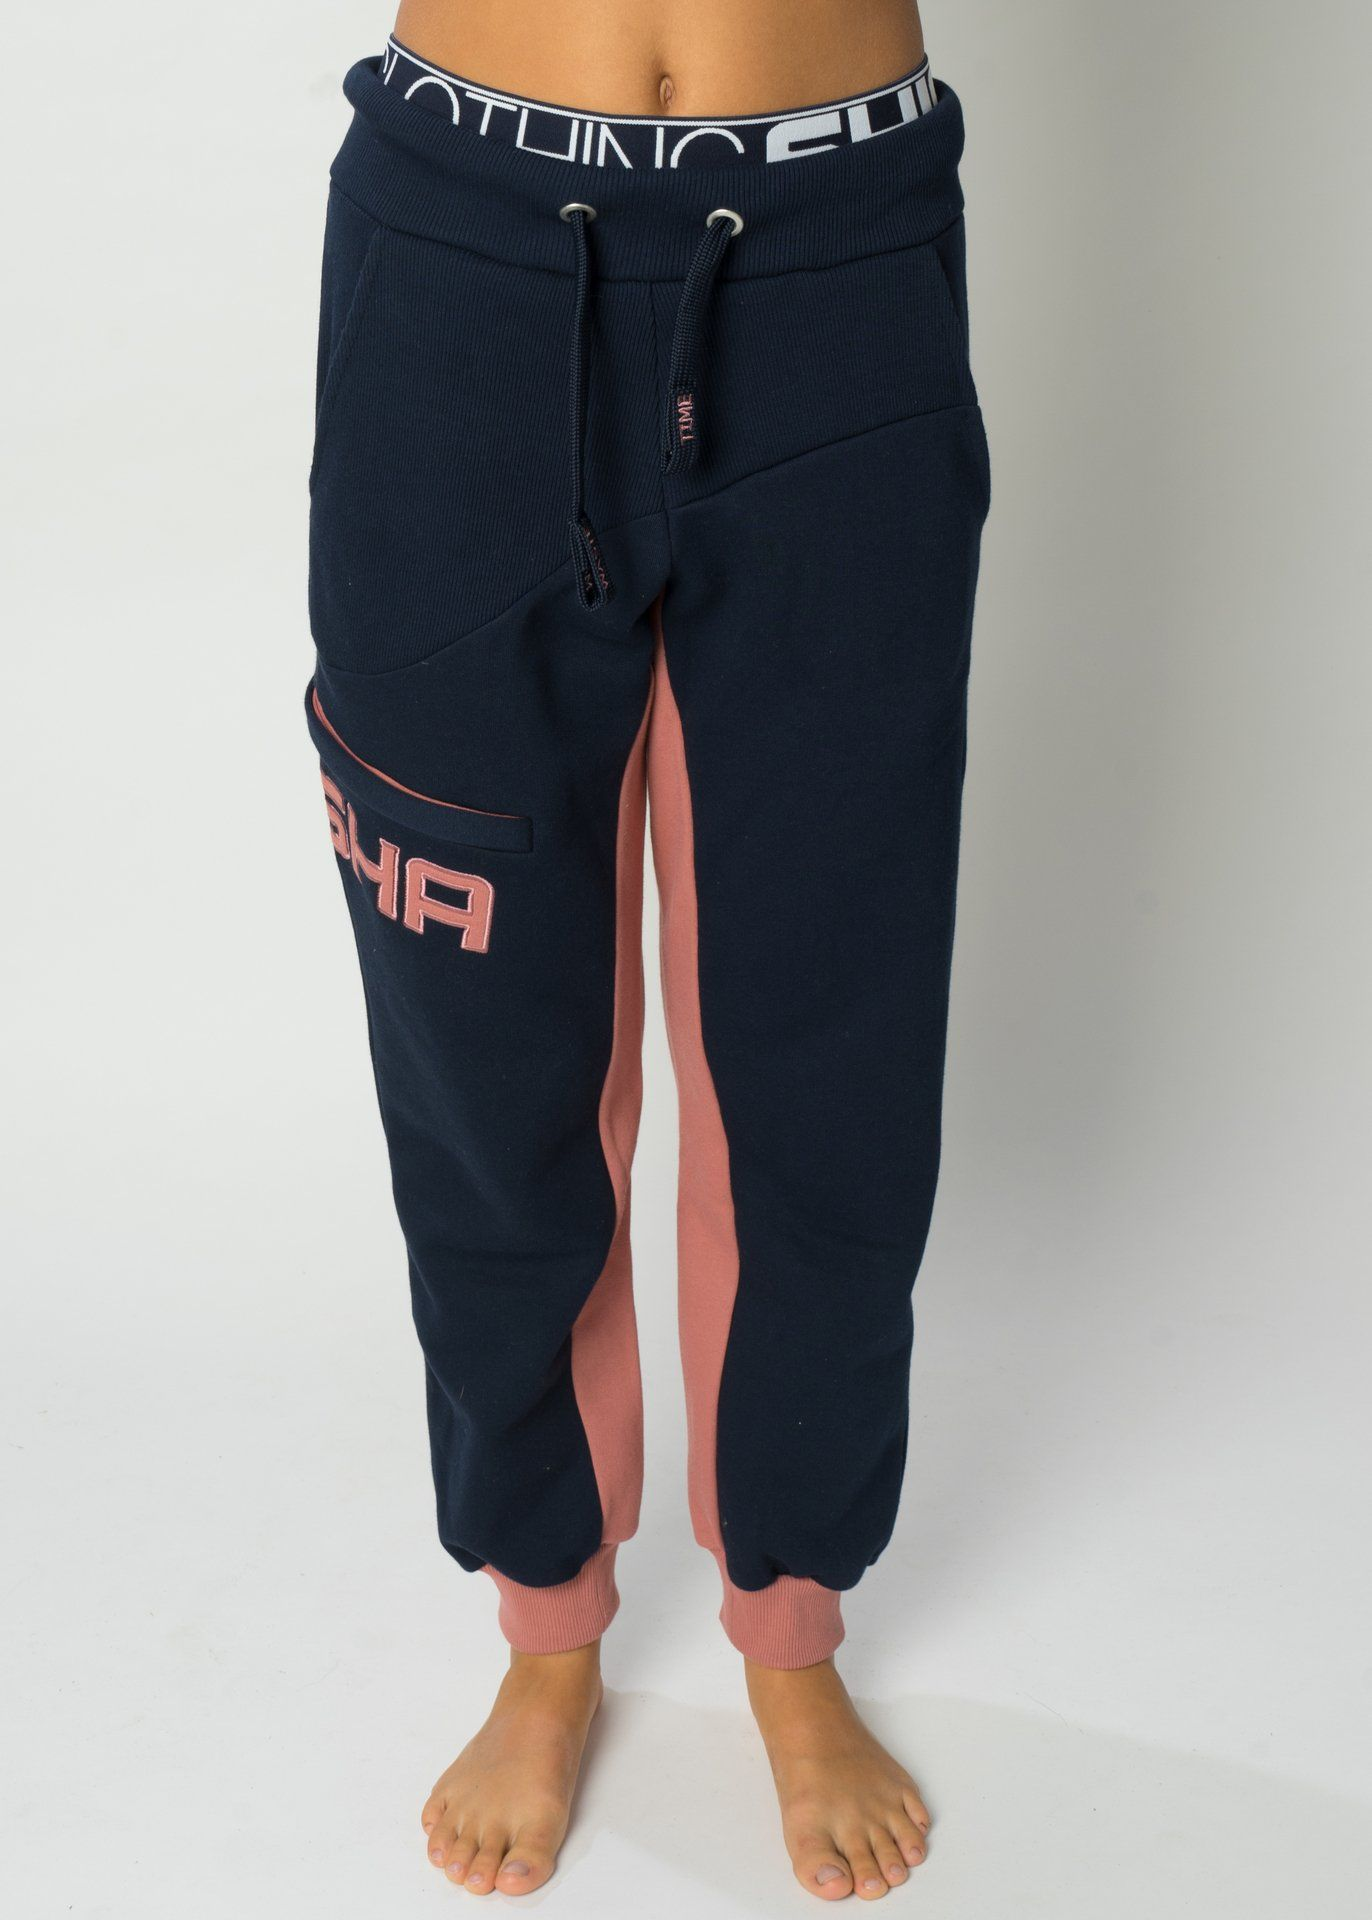 Pant SUNDAG Navy/LightMahagony